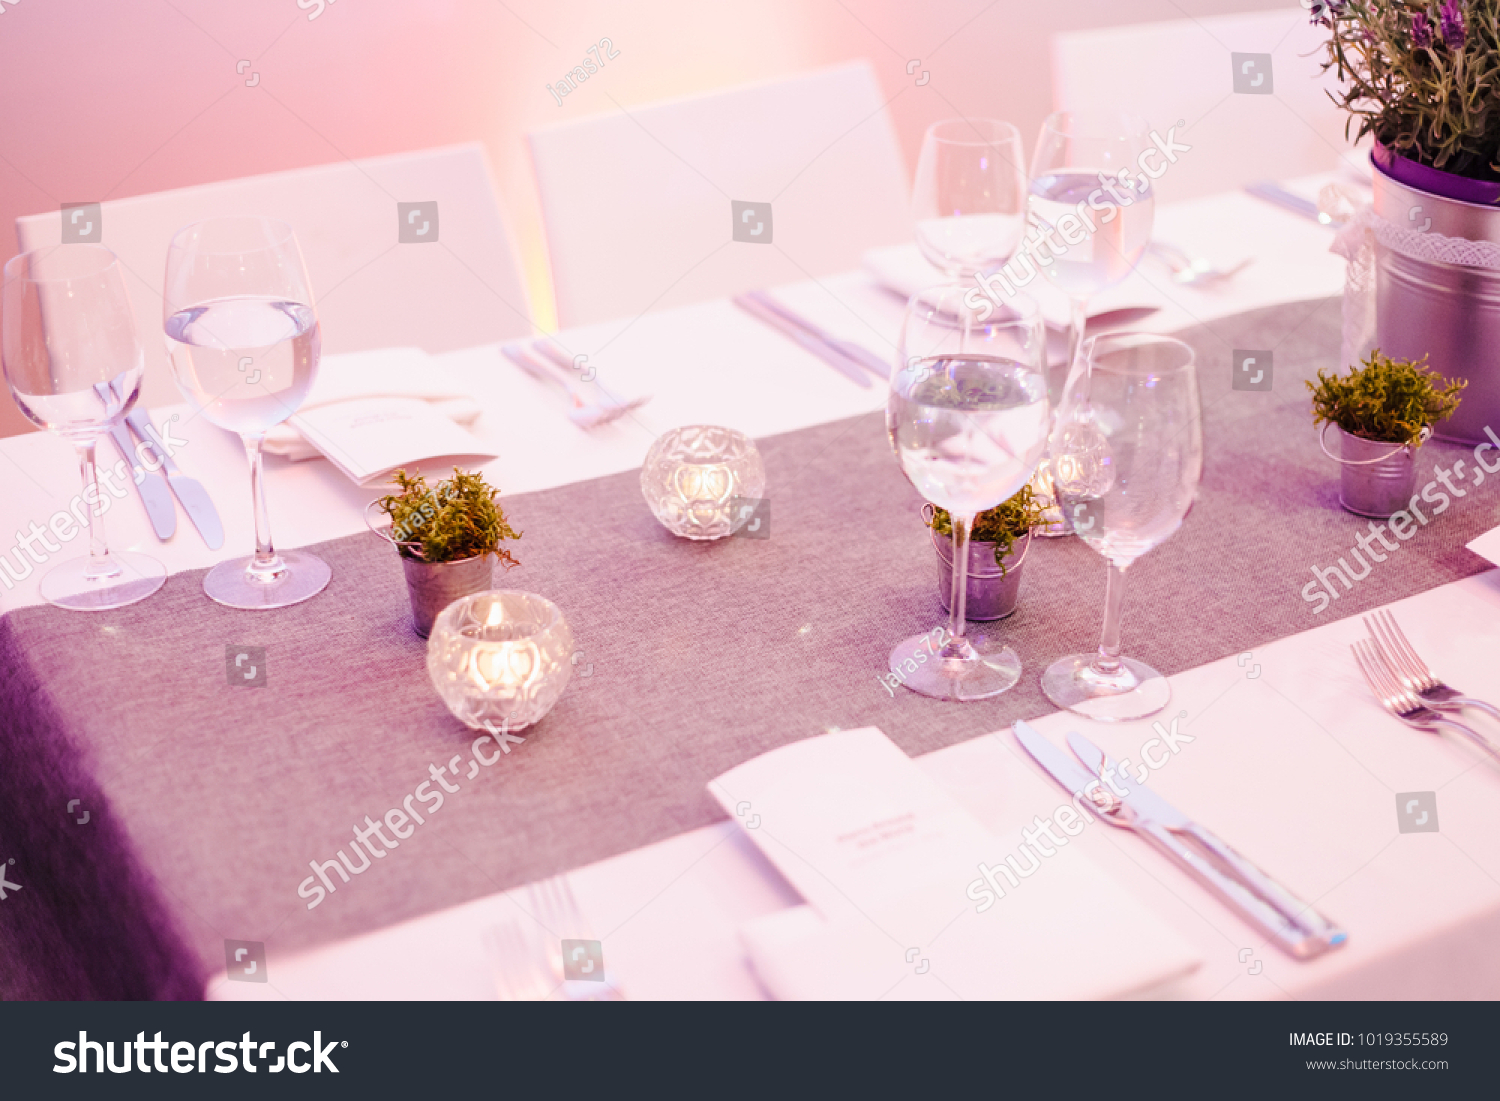 Wedding Table Decoration Luxury Restaurant Table Stock Photo ...